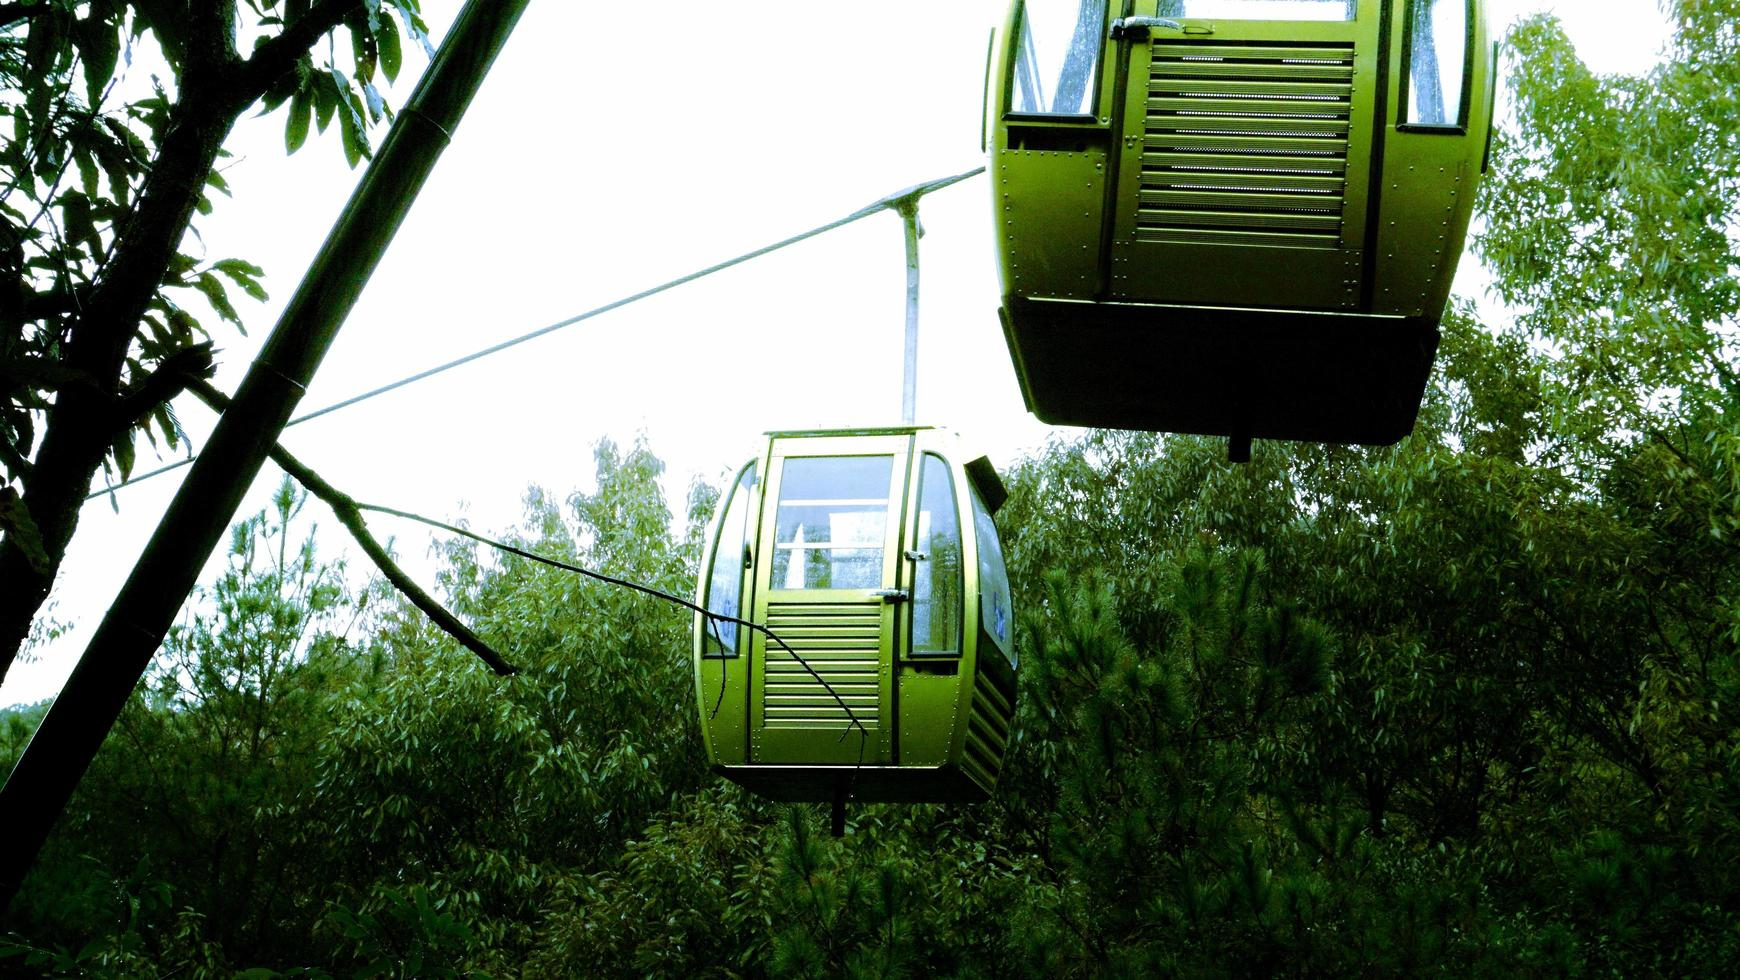 Changshu City, Jiangsu Province, October 25, 2020 - Cable car in the mountains photo